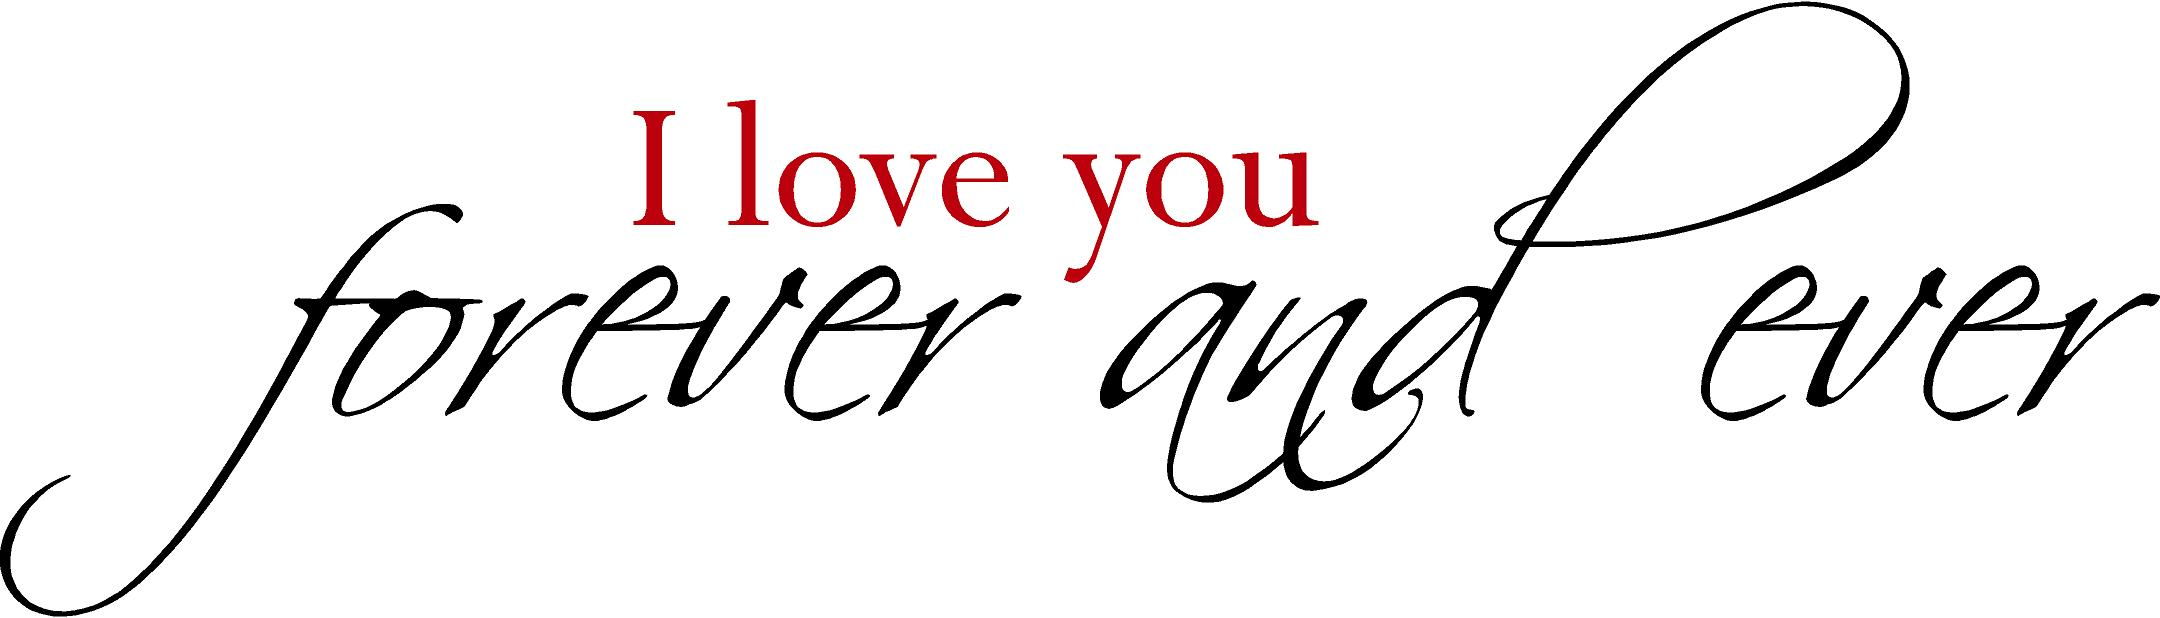 I Love You Forever And Ever Header Wallpaper - NiceWishes